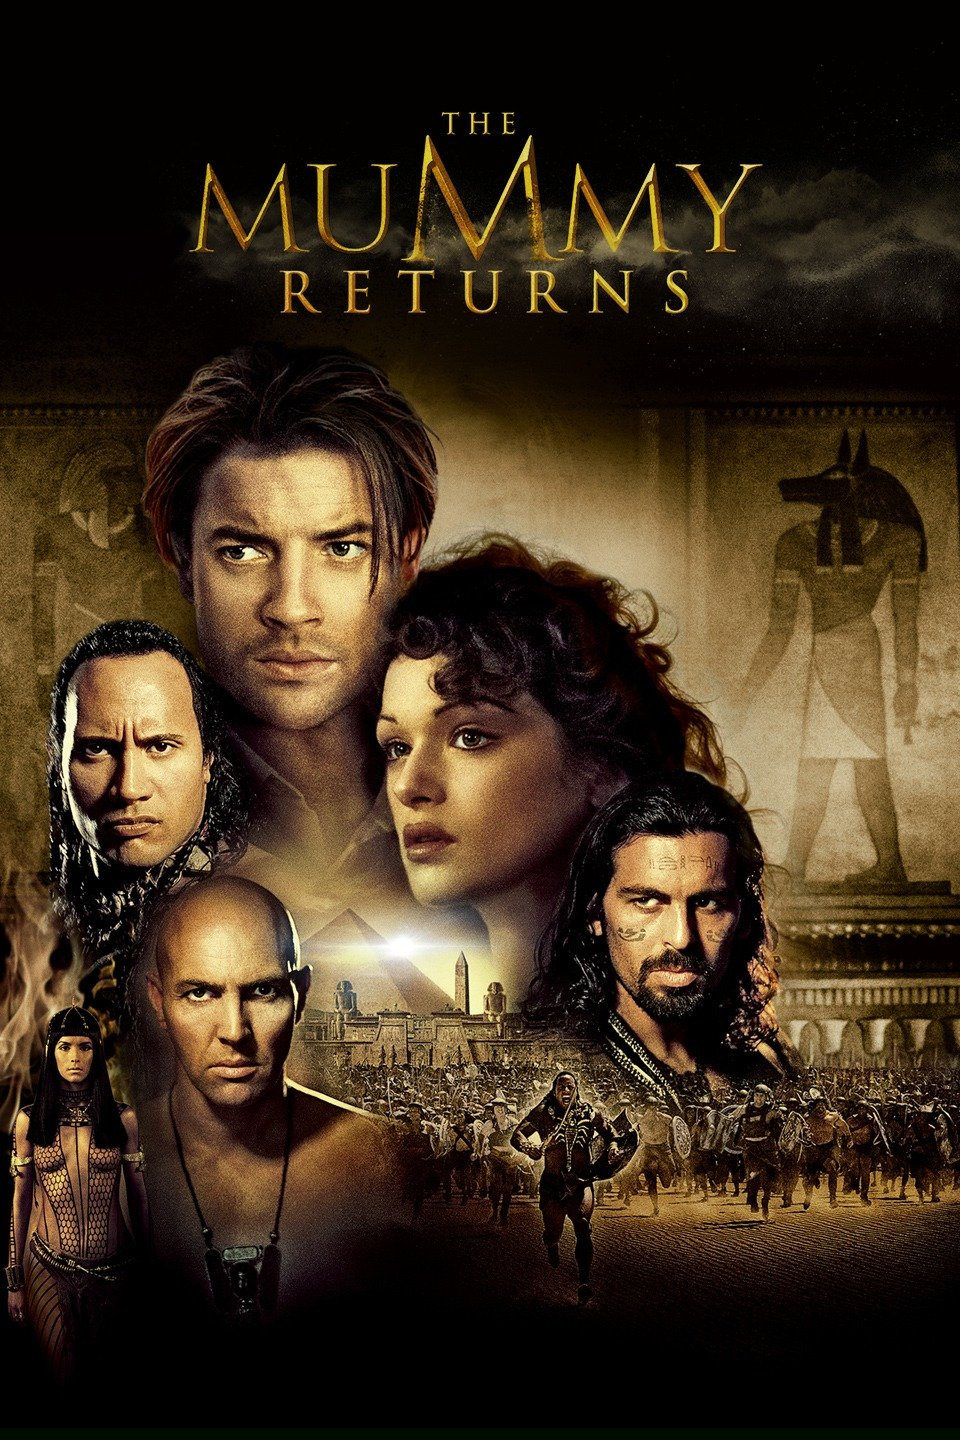 the mummy return movie in hindi hd download